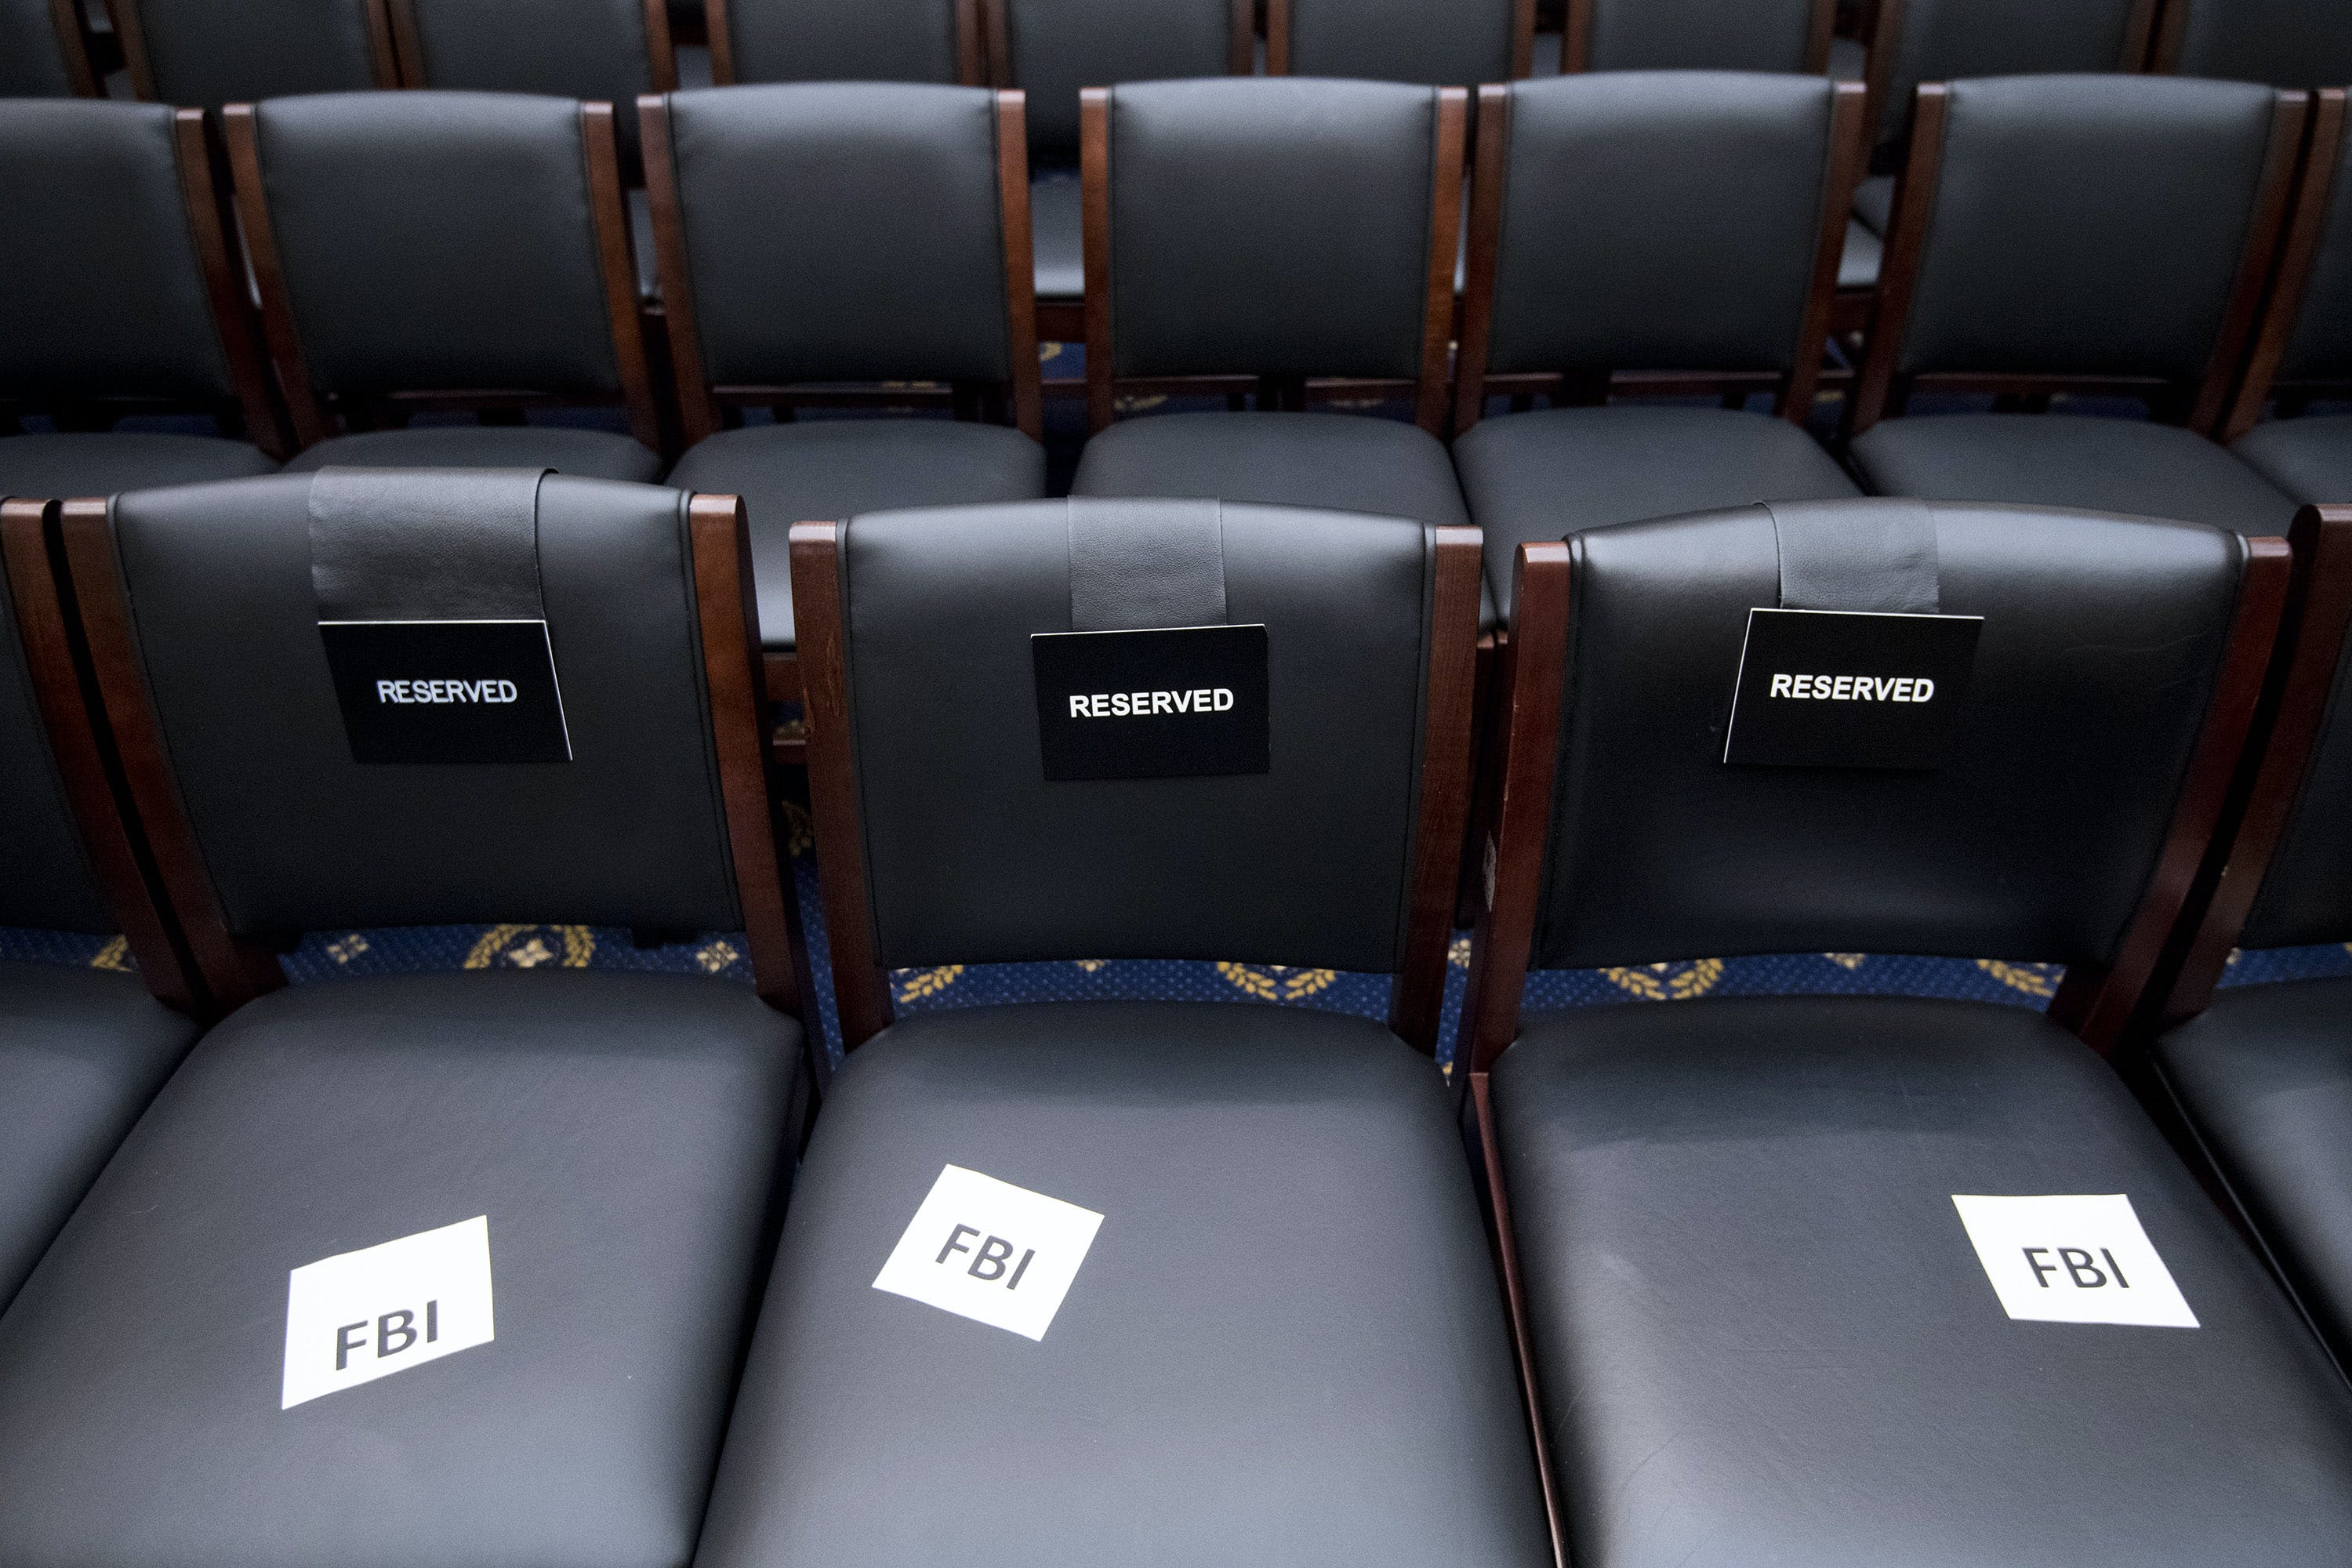 UNITED STATES - DECEMBER 7: Seats are reserved for FBI staff in the House Judiciary Committee before the hearing on oversight of the Federal Bureau of Investigation on Thursday, Dec. 7, 2017. (Photo By Bill Clark/CQ Roll Call)